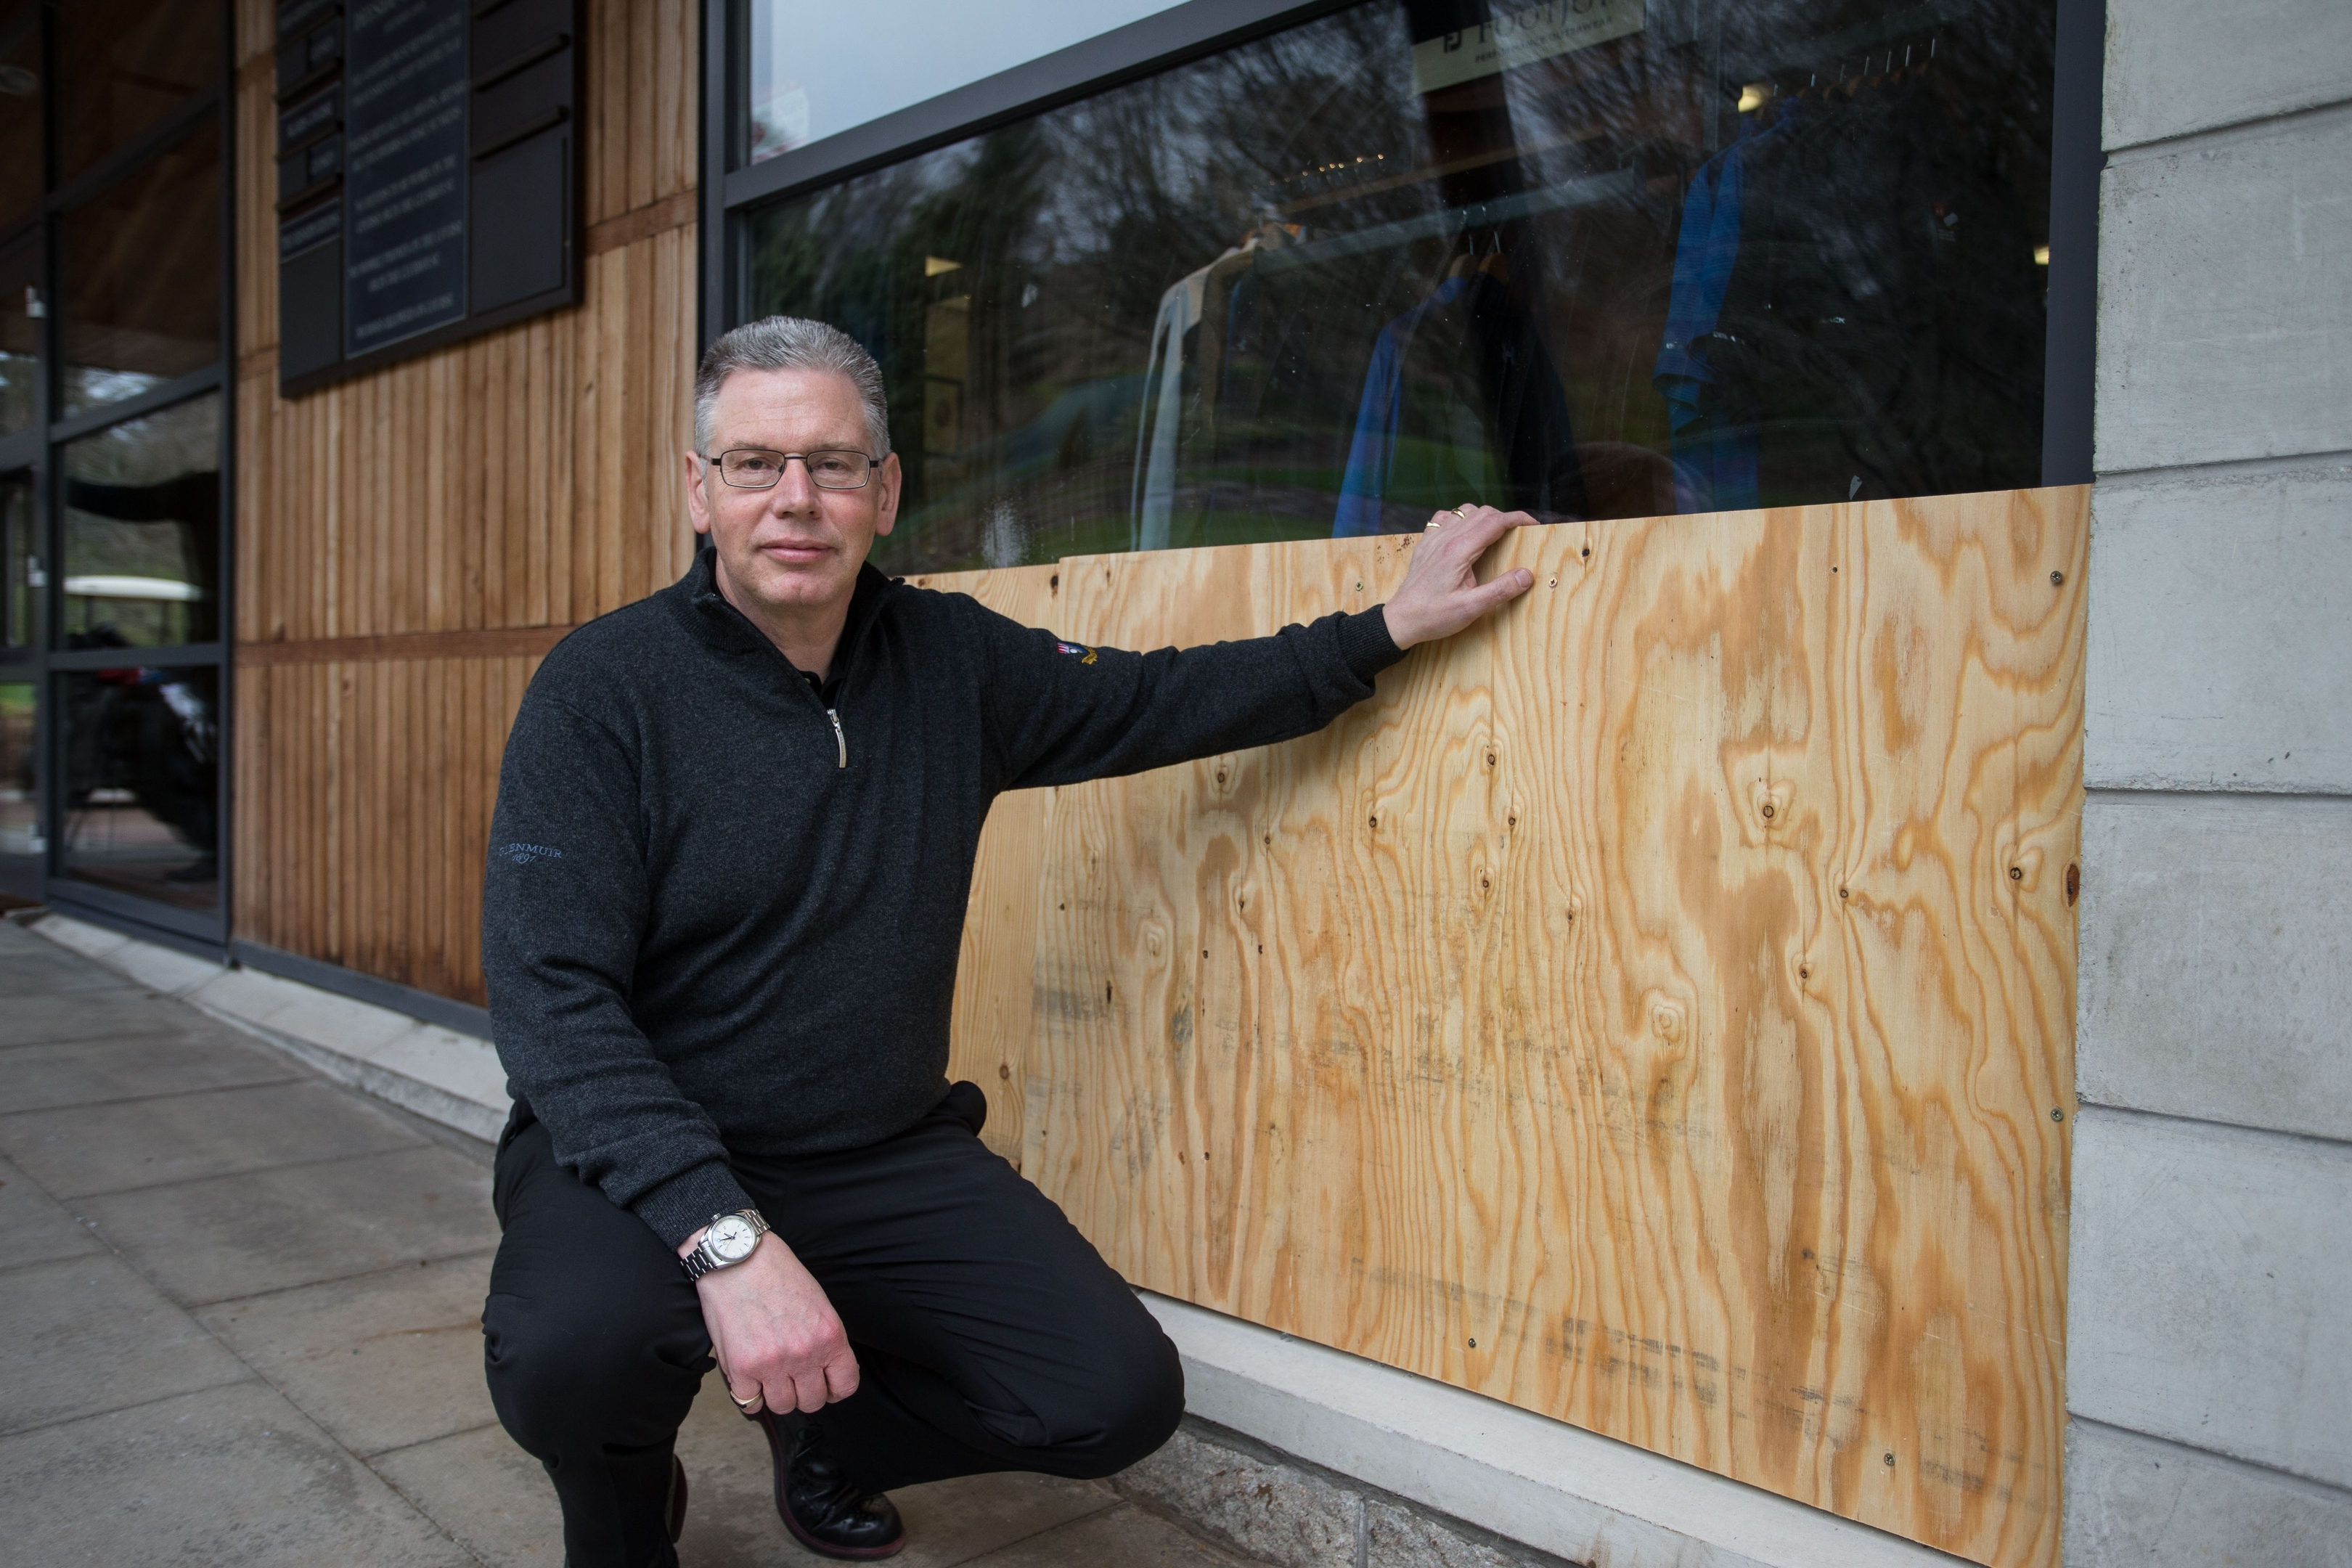 Professional Frank Coutts sits by the smashed window